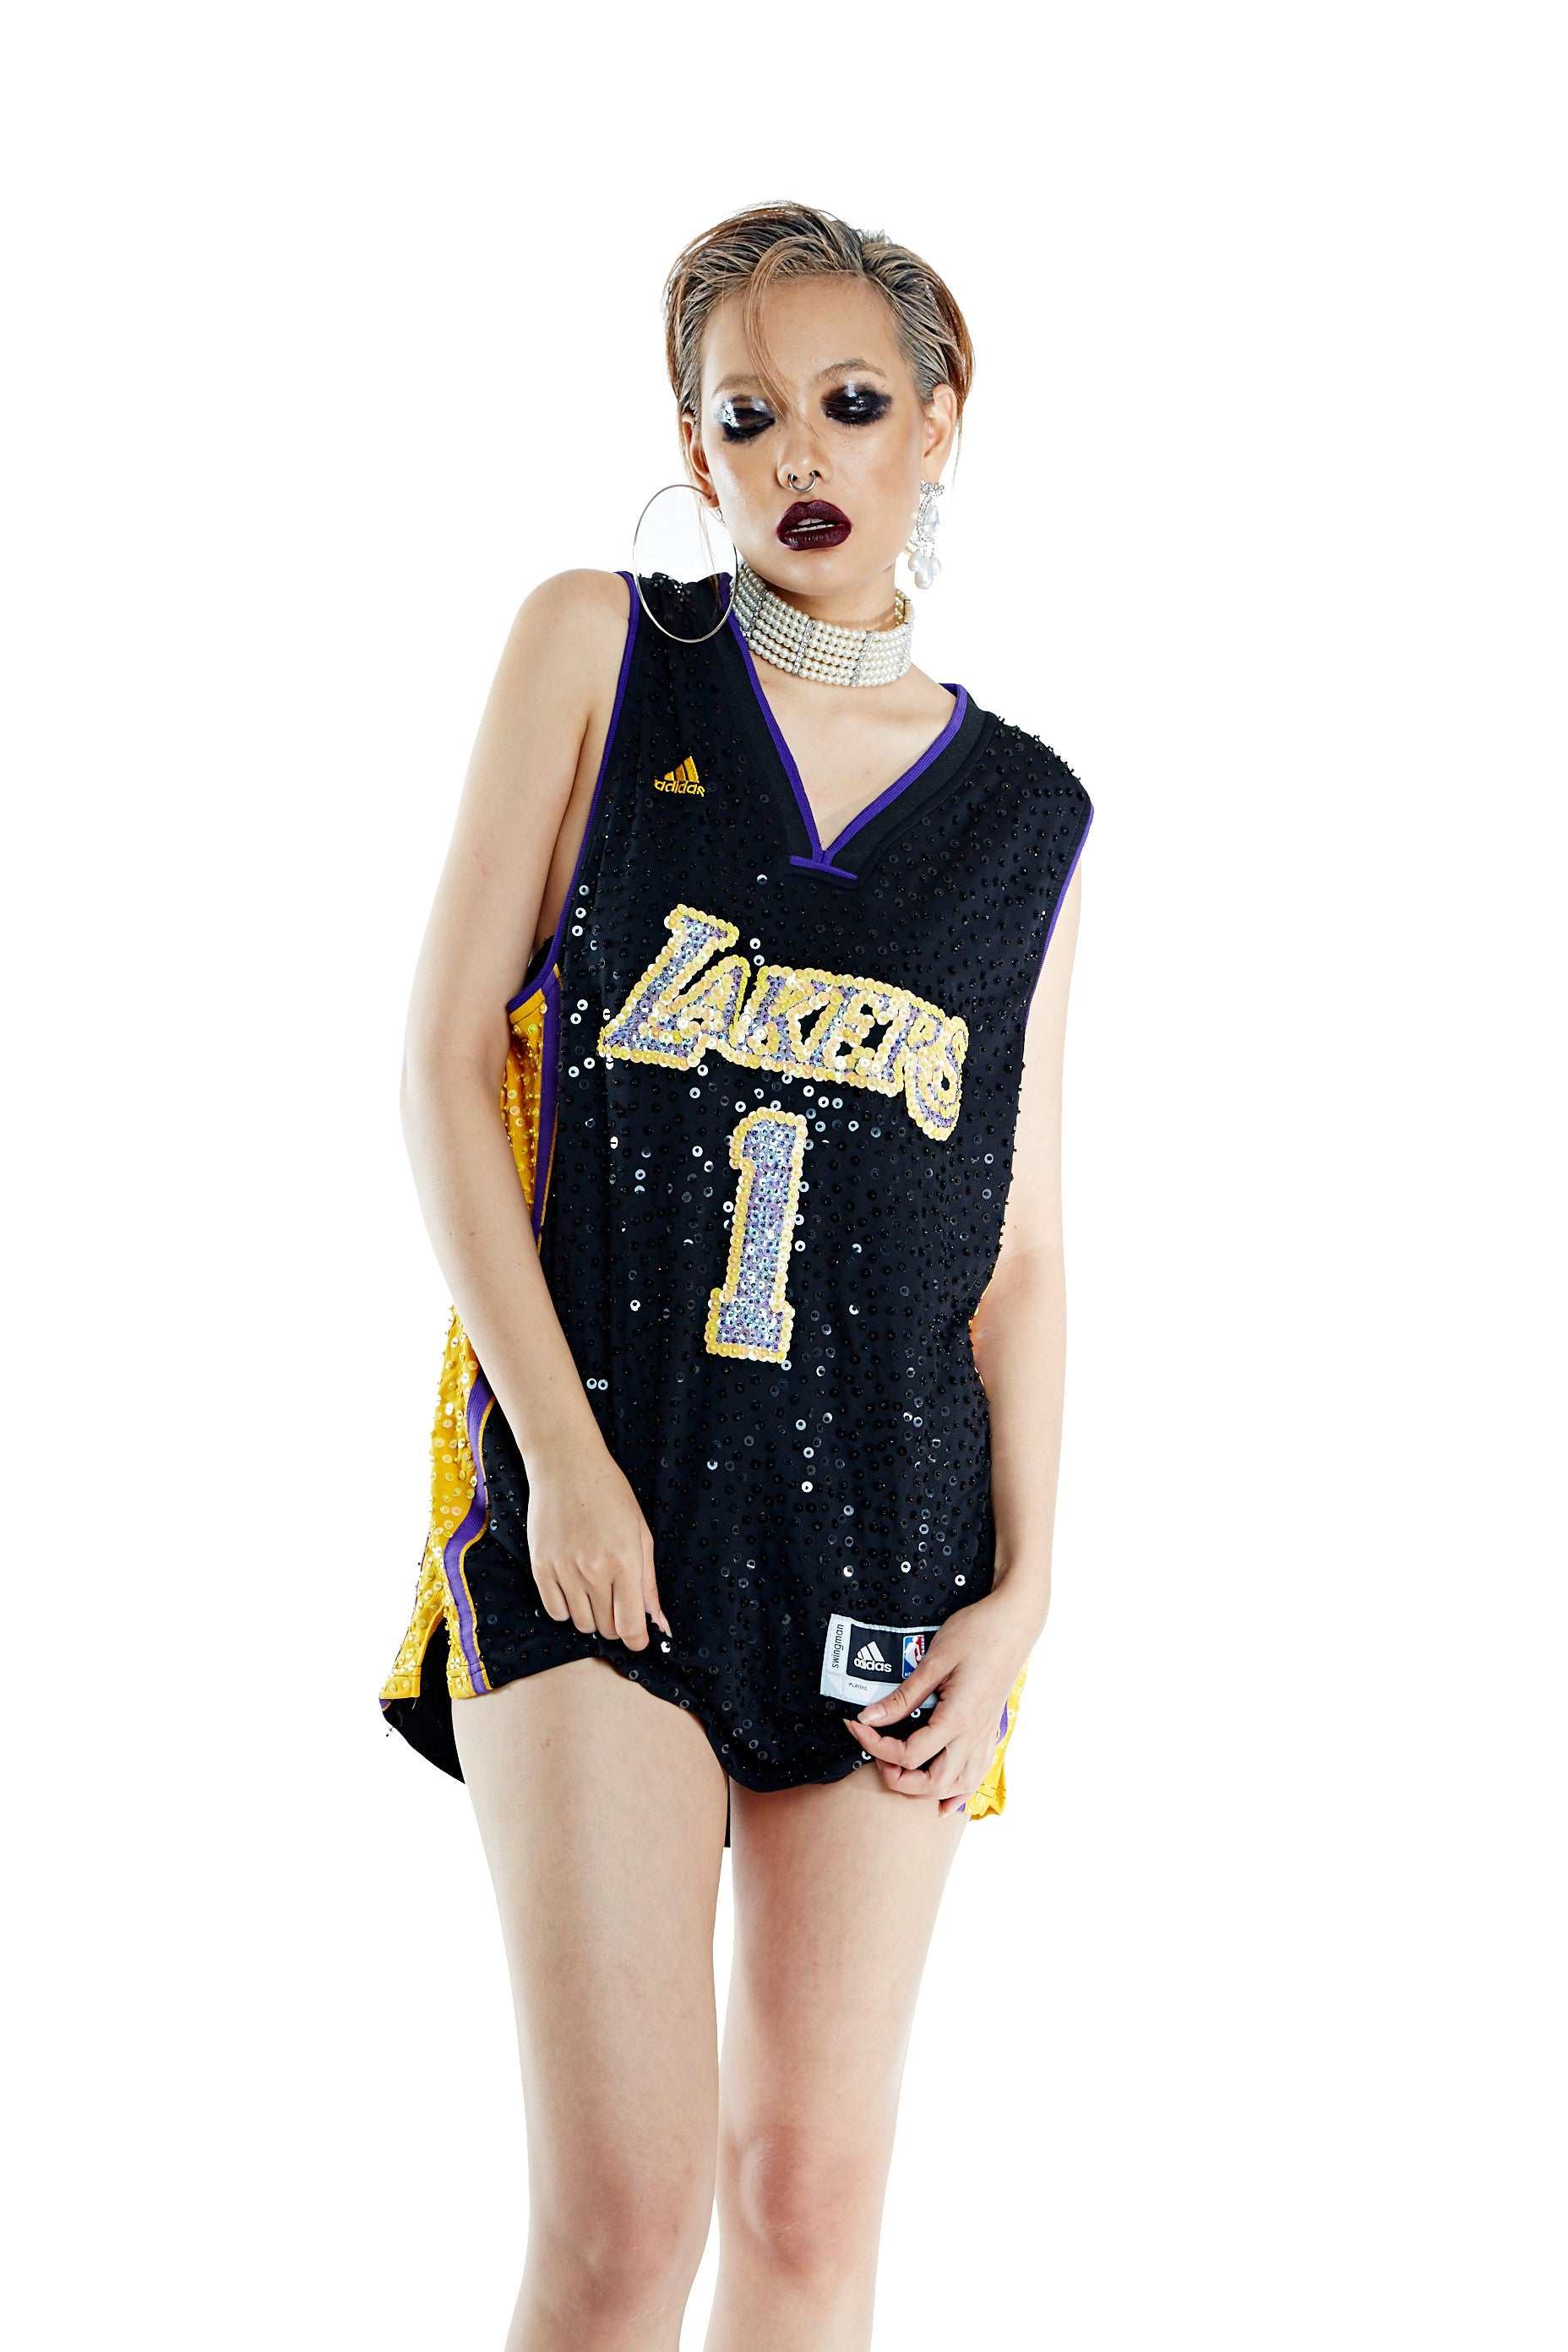 Los Angeles Lakers '1' Russell Thorn Jersey Mod